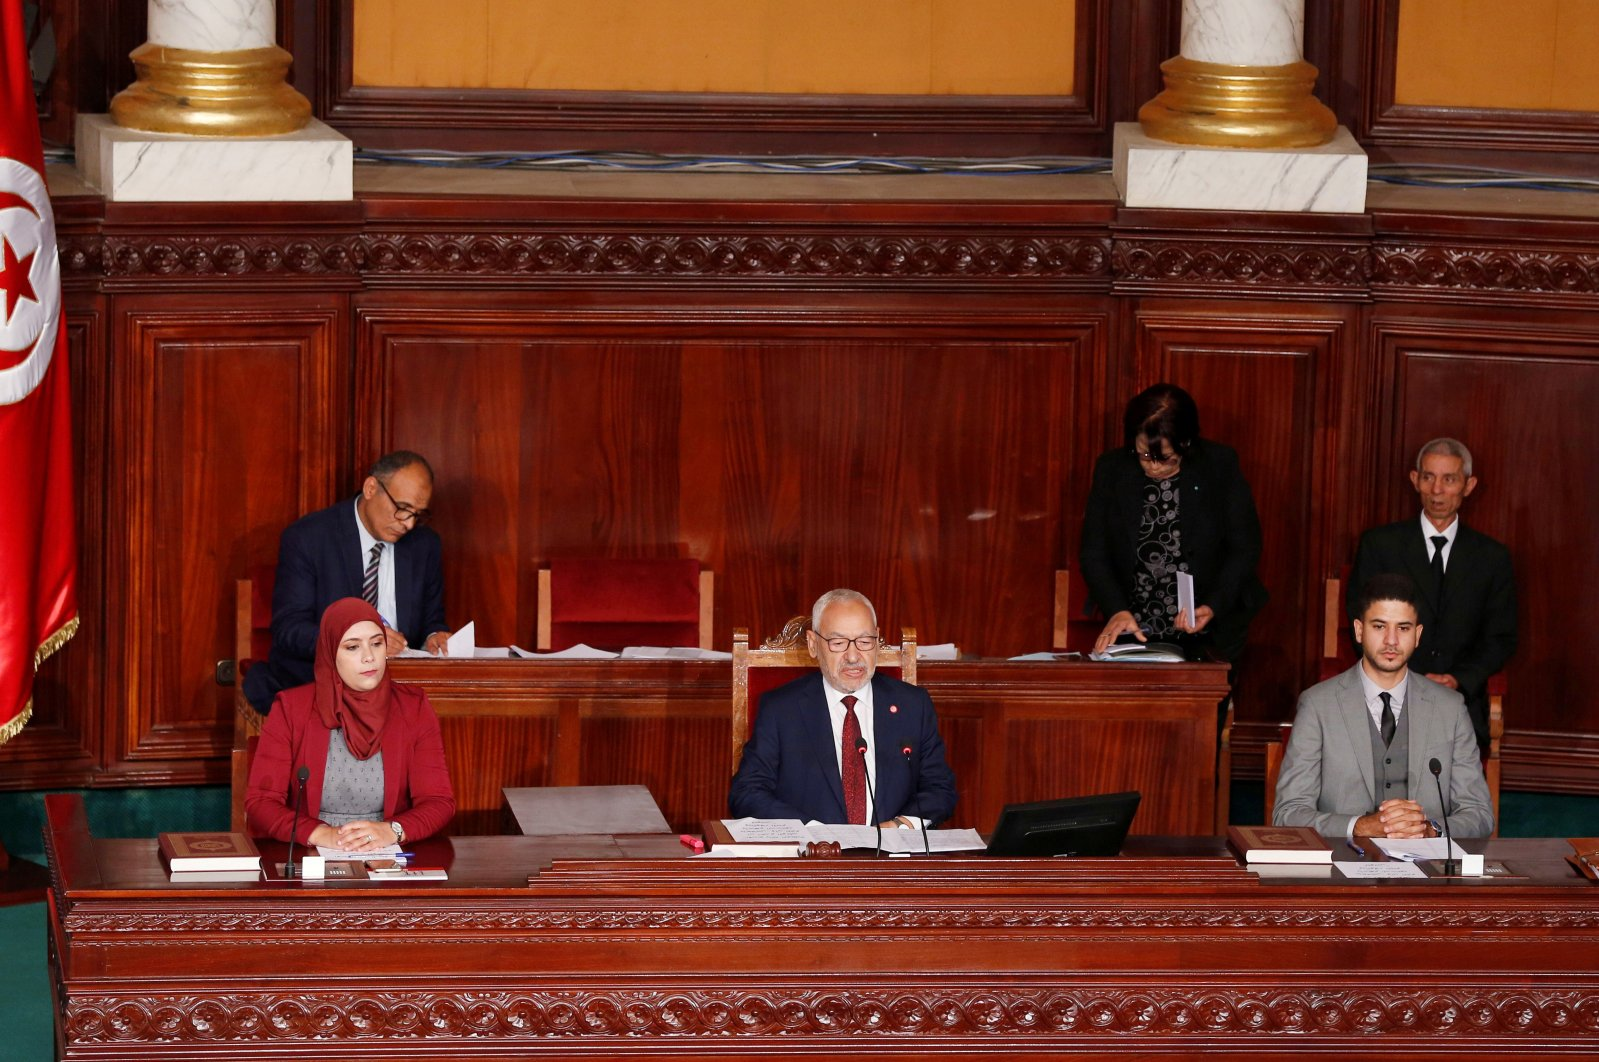 Rached Ghannouchi, leader of Tunisia's moderate Islamist Ennahda party, attends Tunisia's new parliament first session to elect a speaker, in Tunis, Tunisia November 13, 2019. (Reuters Photo)